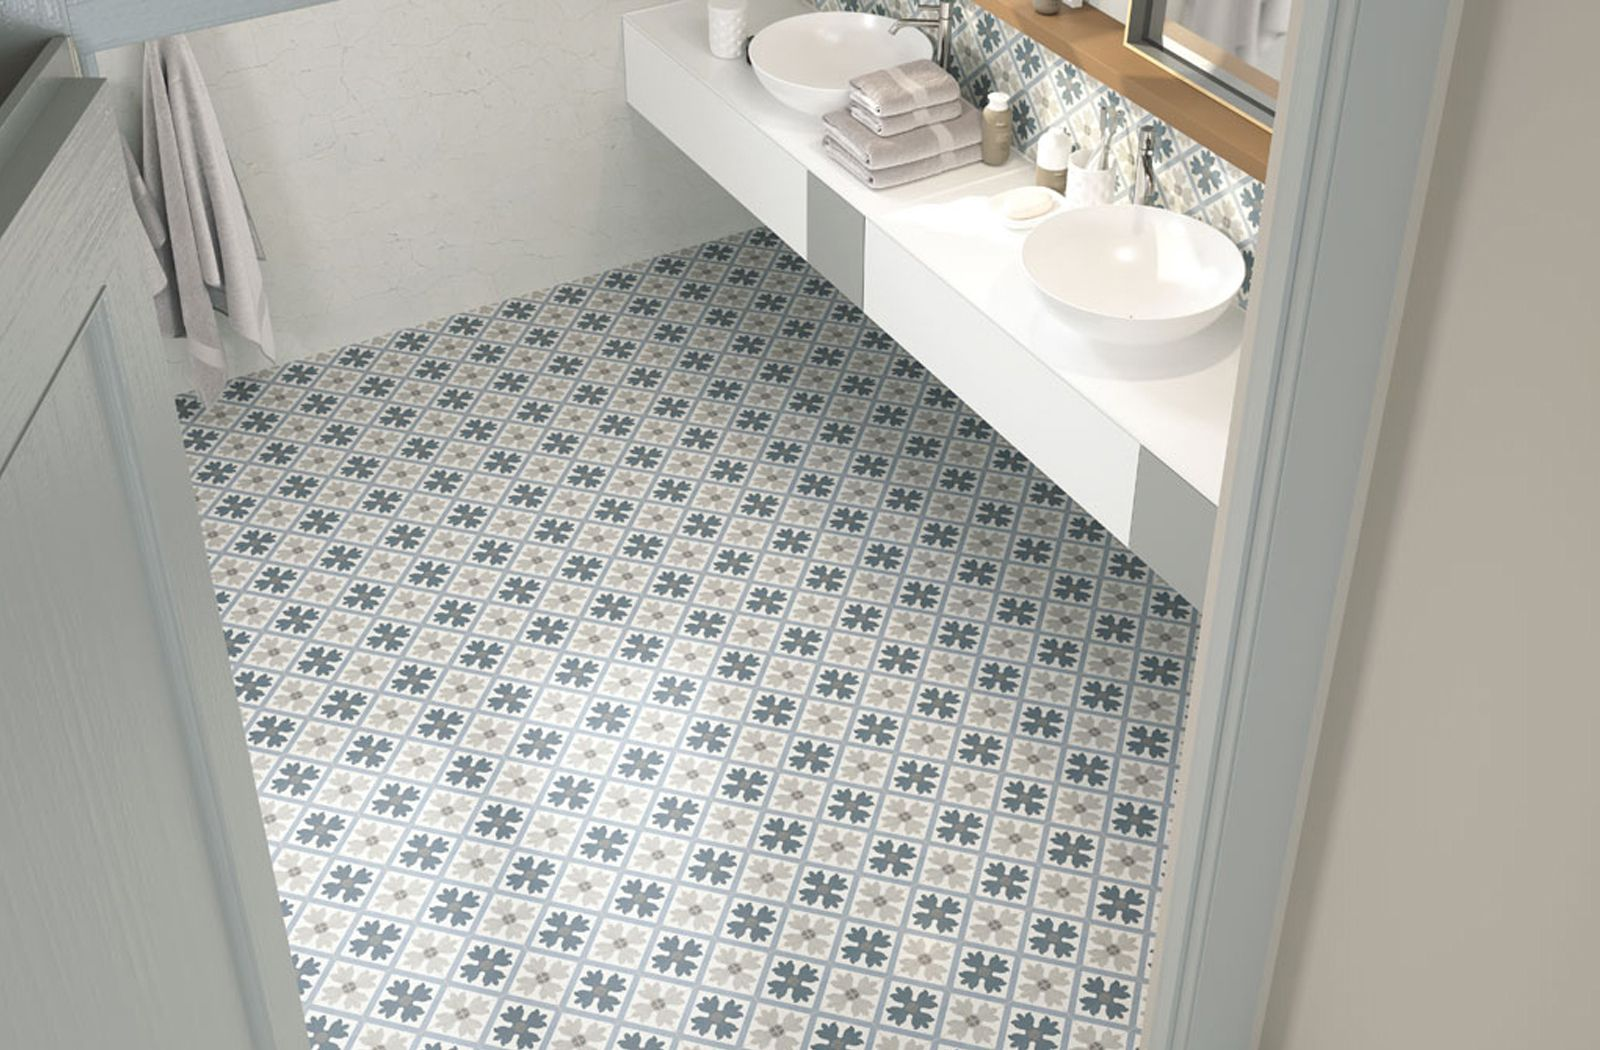 Bathroom Floor Patterns With Fiorella Tile Collection From Ape Ceramica